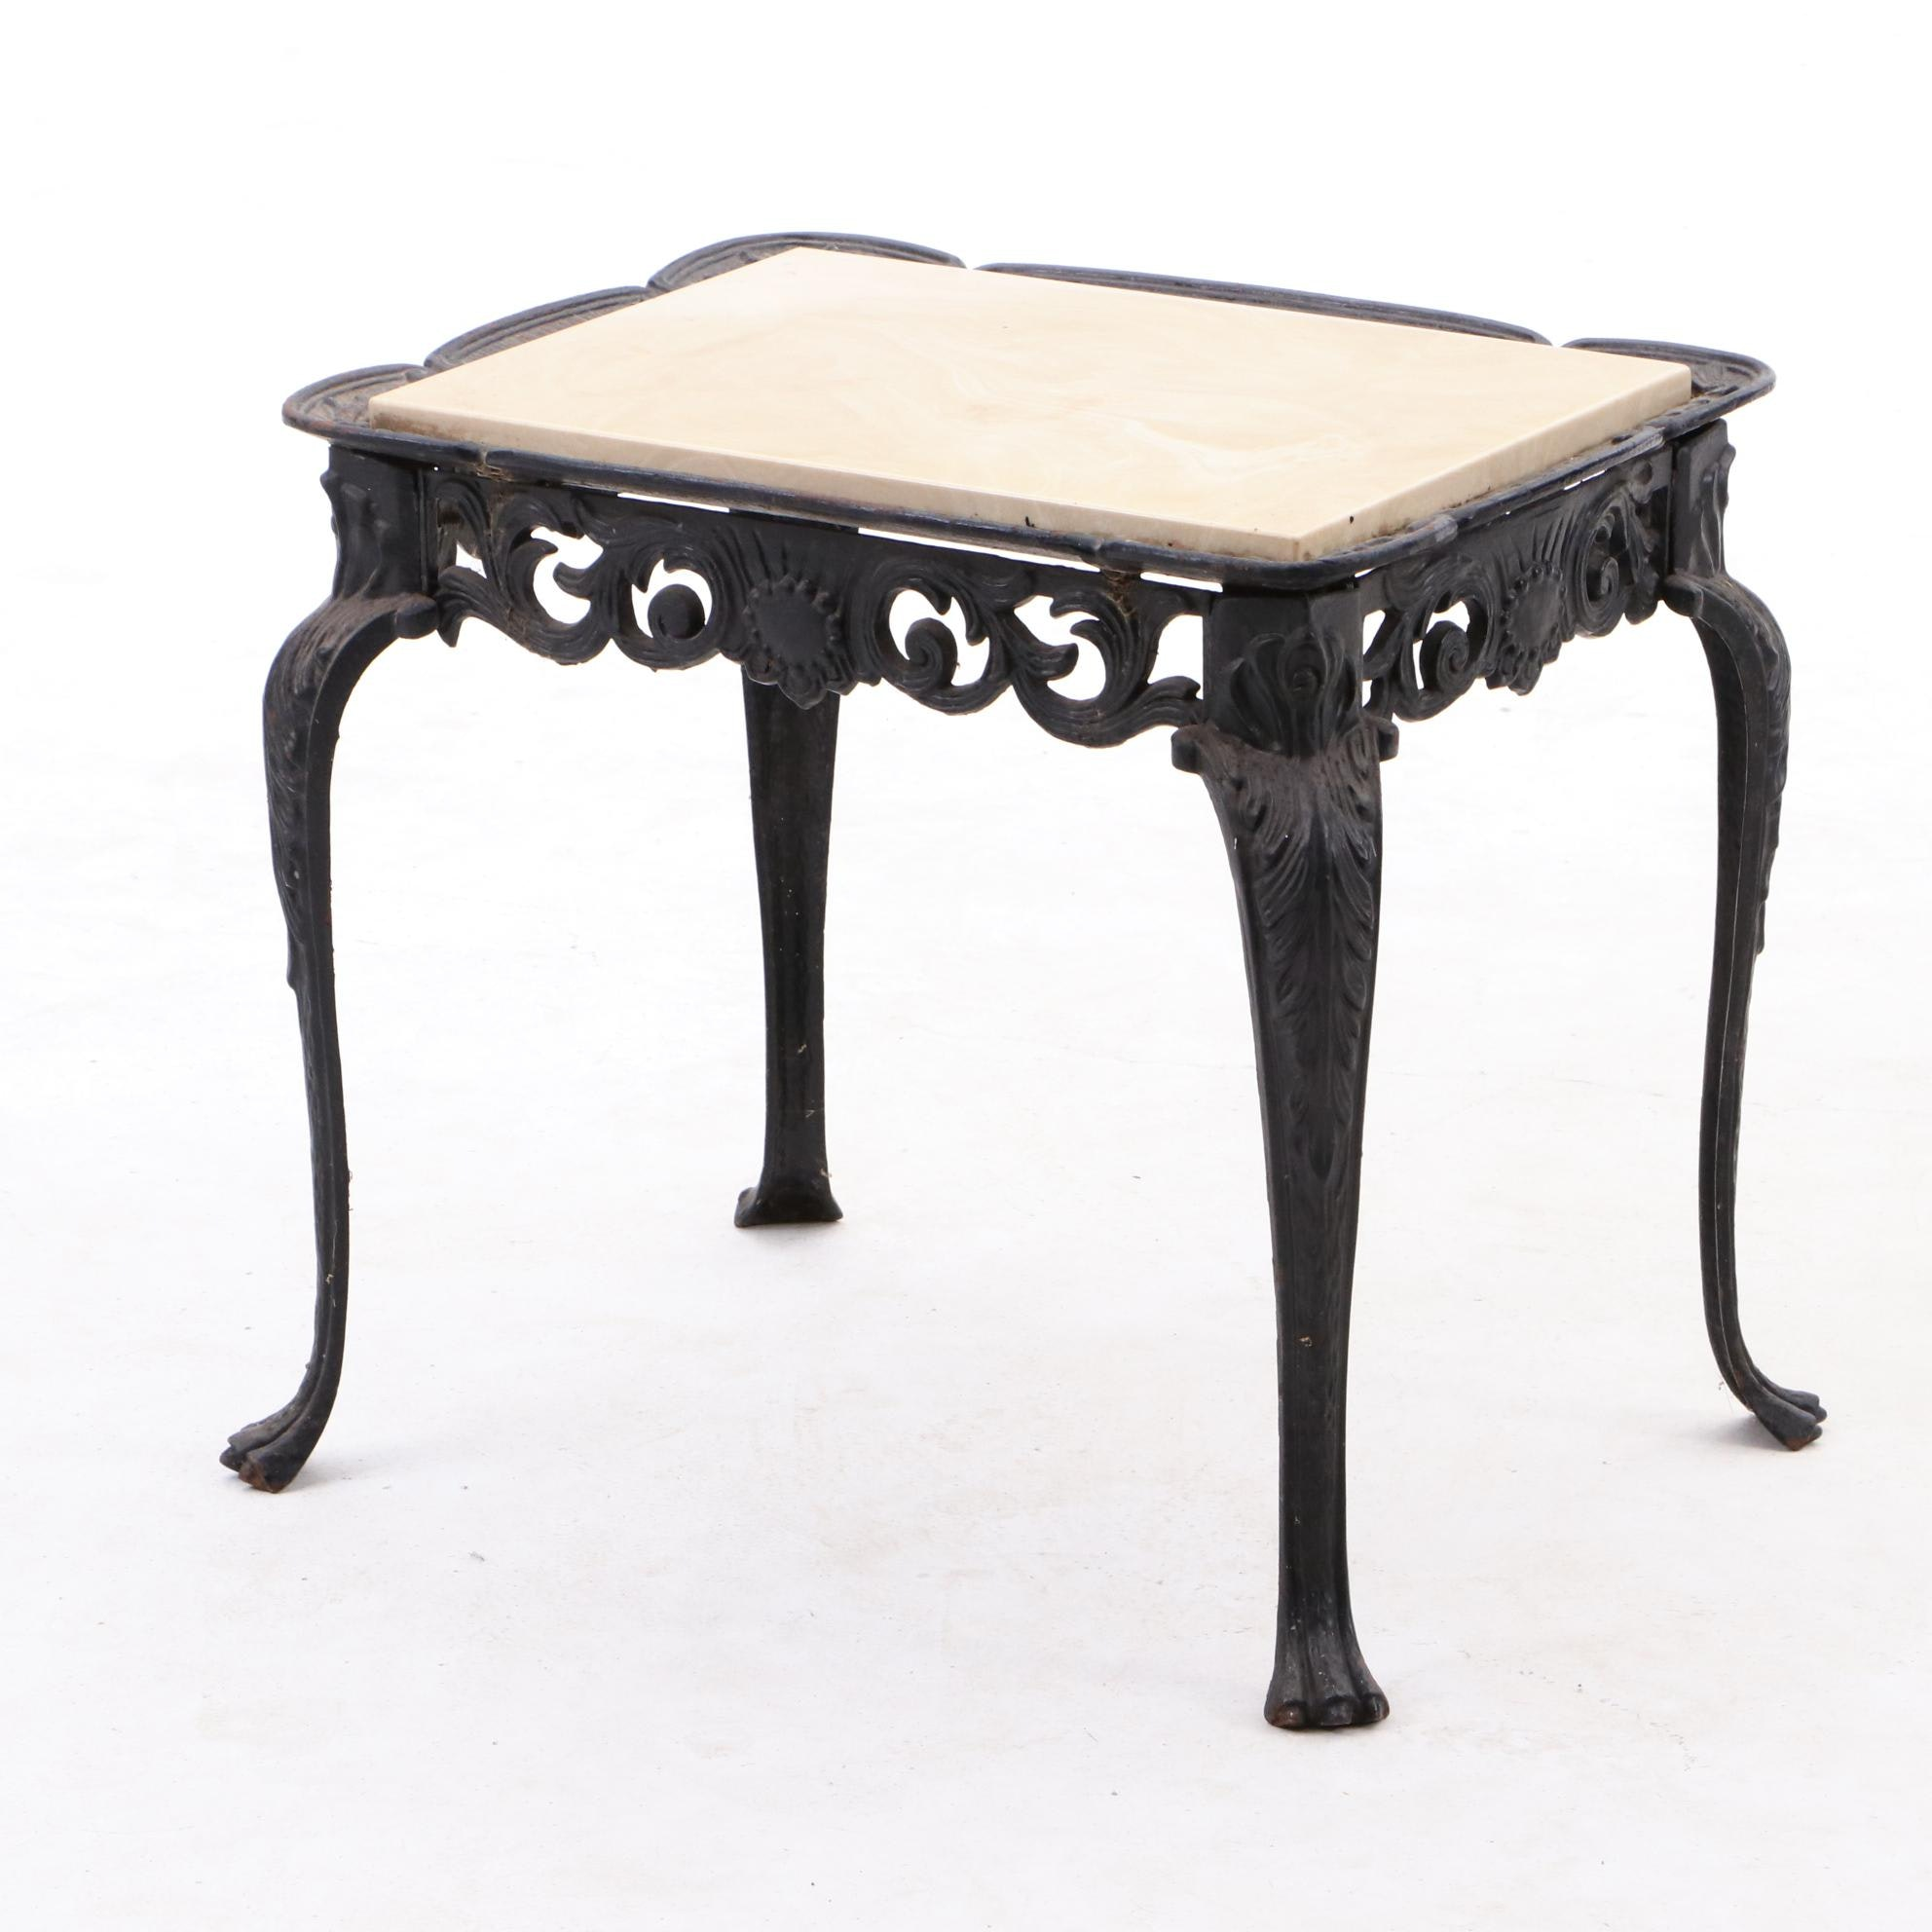 Vintage Cast Iron Accent or Patio Table